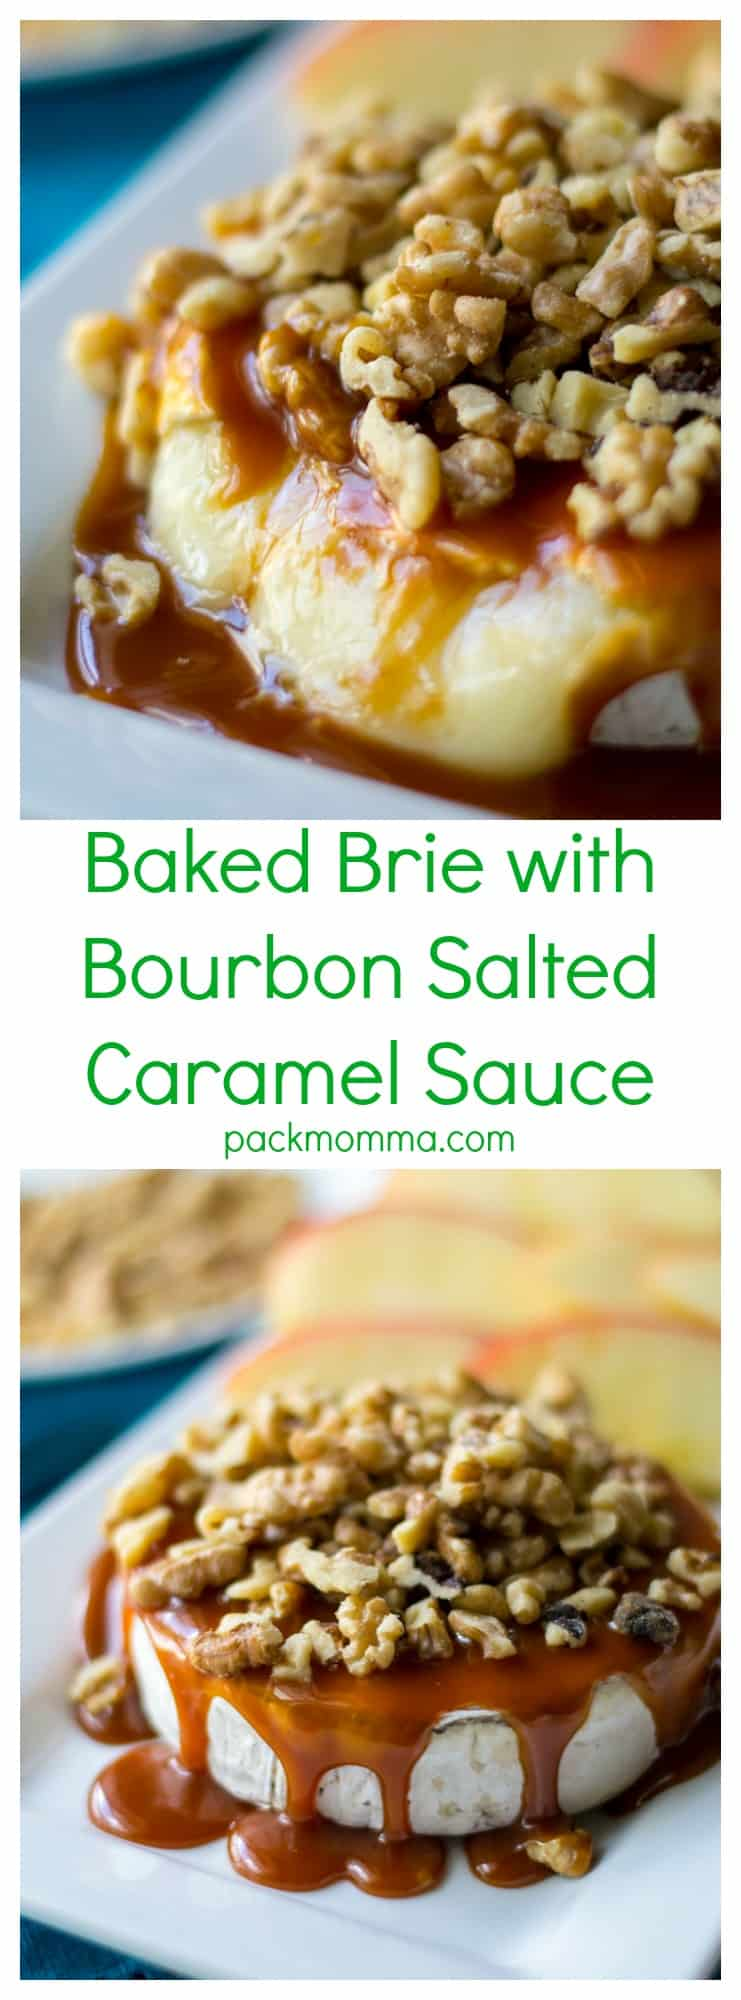 Baked Brie with Bourbon Salted Caramel Sauce | Baked Brie with Bourbon Salted Caramel Sauce is the ultimate quick, easy and delicious appetizer to add to any party, game day or holiday gathering. | Pack Momma | https://www.packmomma.com